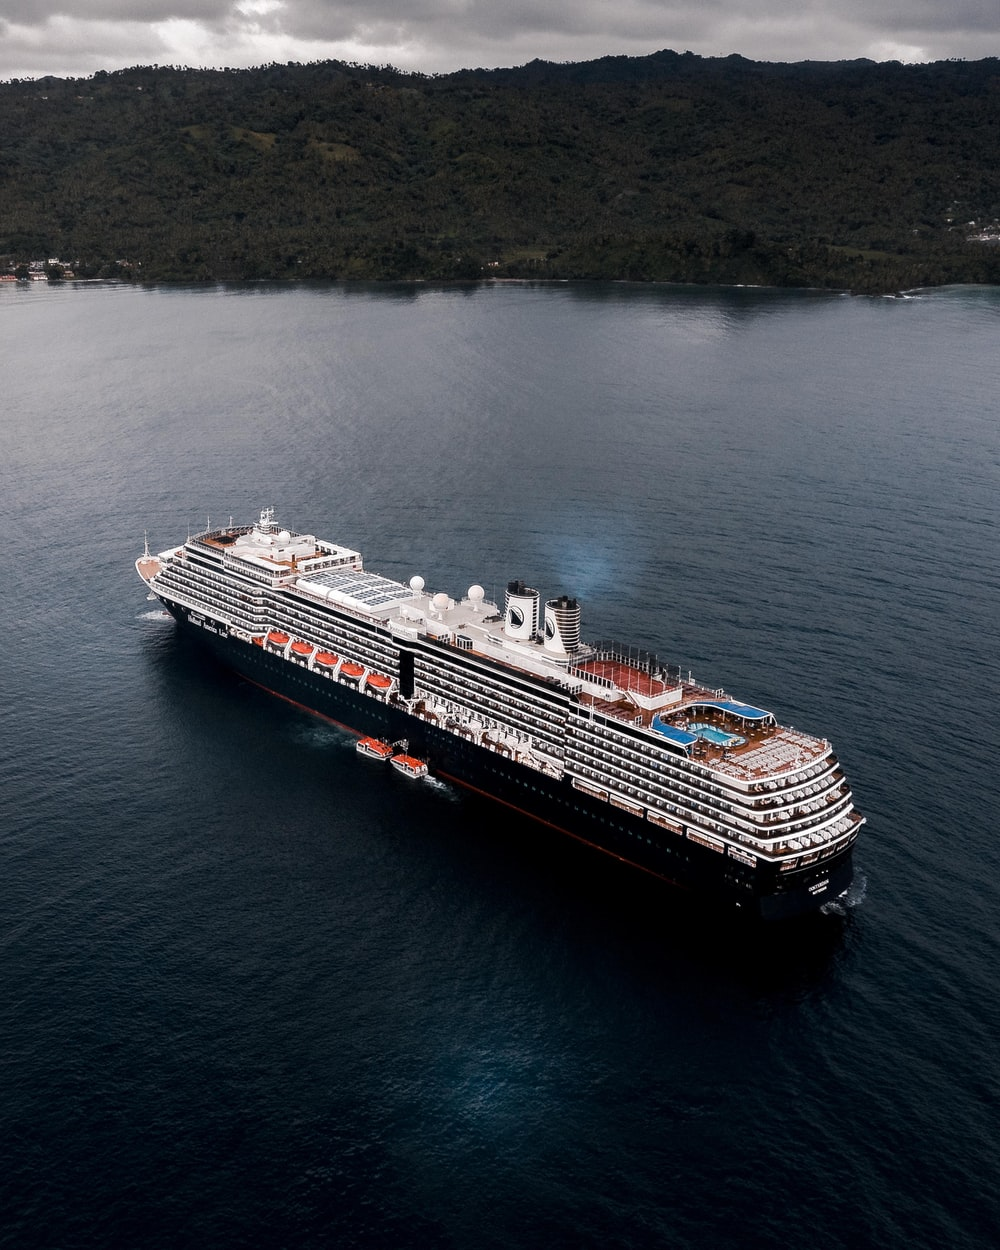 cruise ship on calm body of water